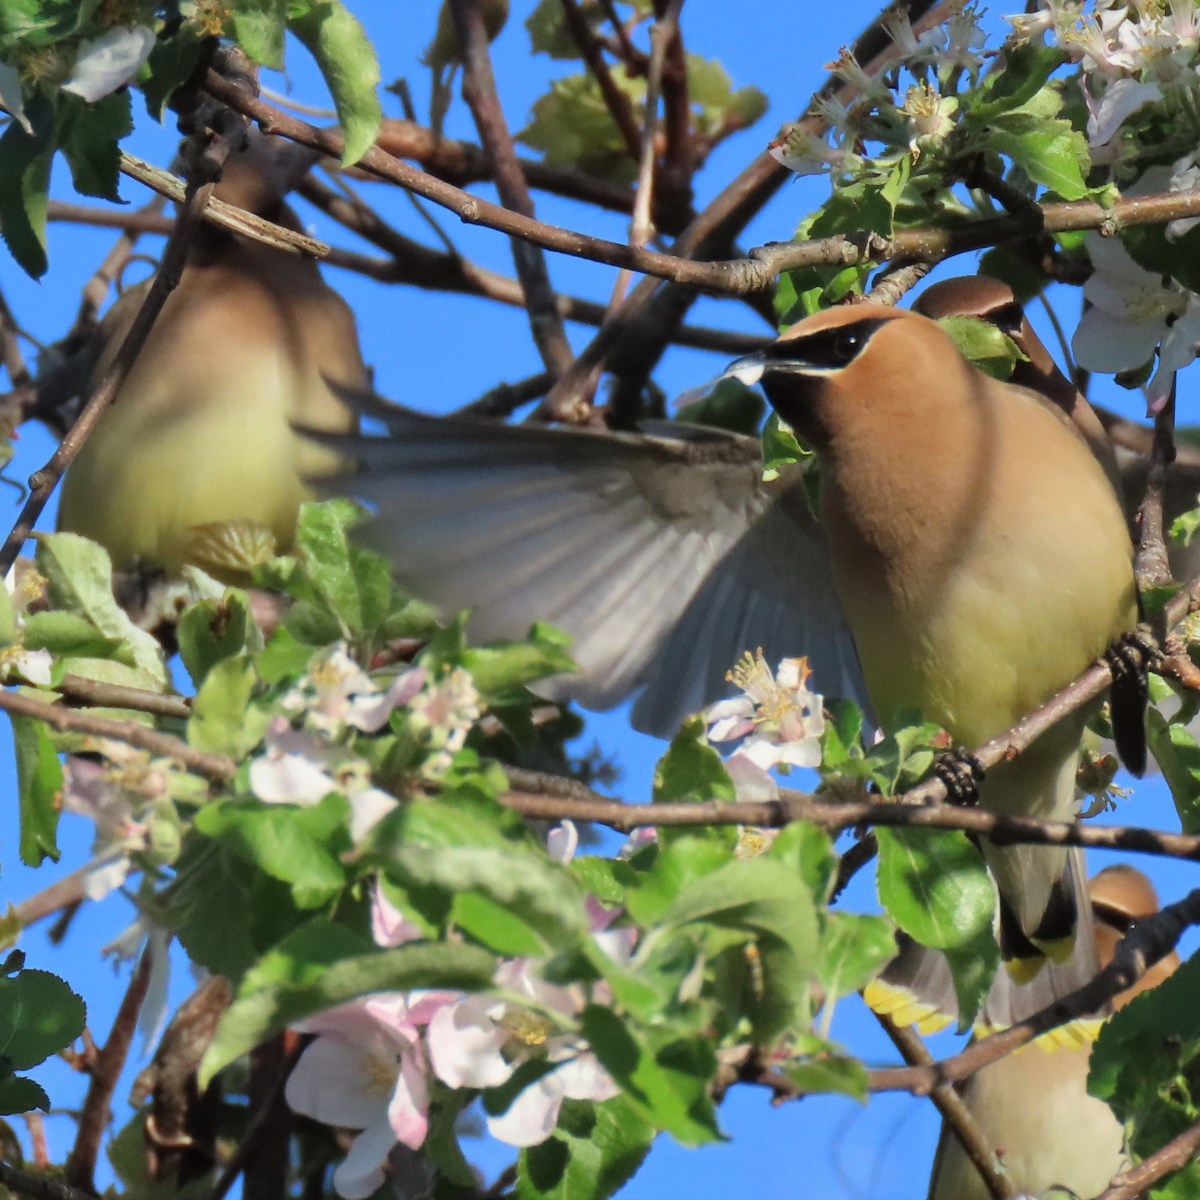 Two Cedar Waxwings in an apple tree. One has outstretched wings.